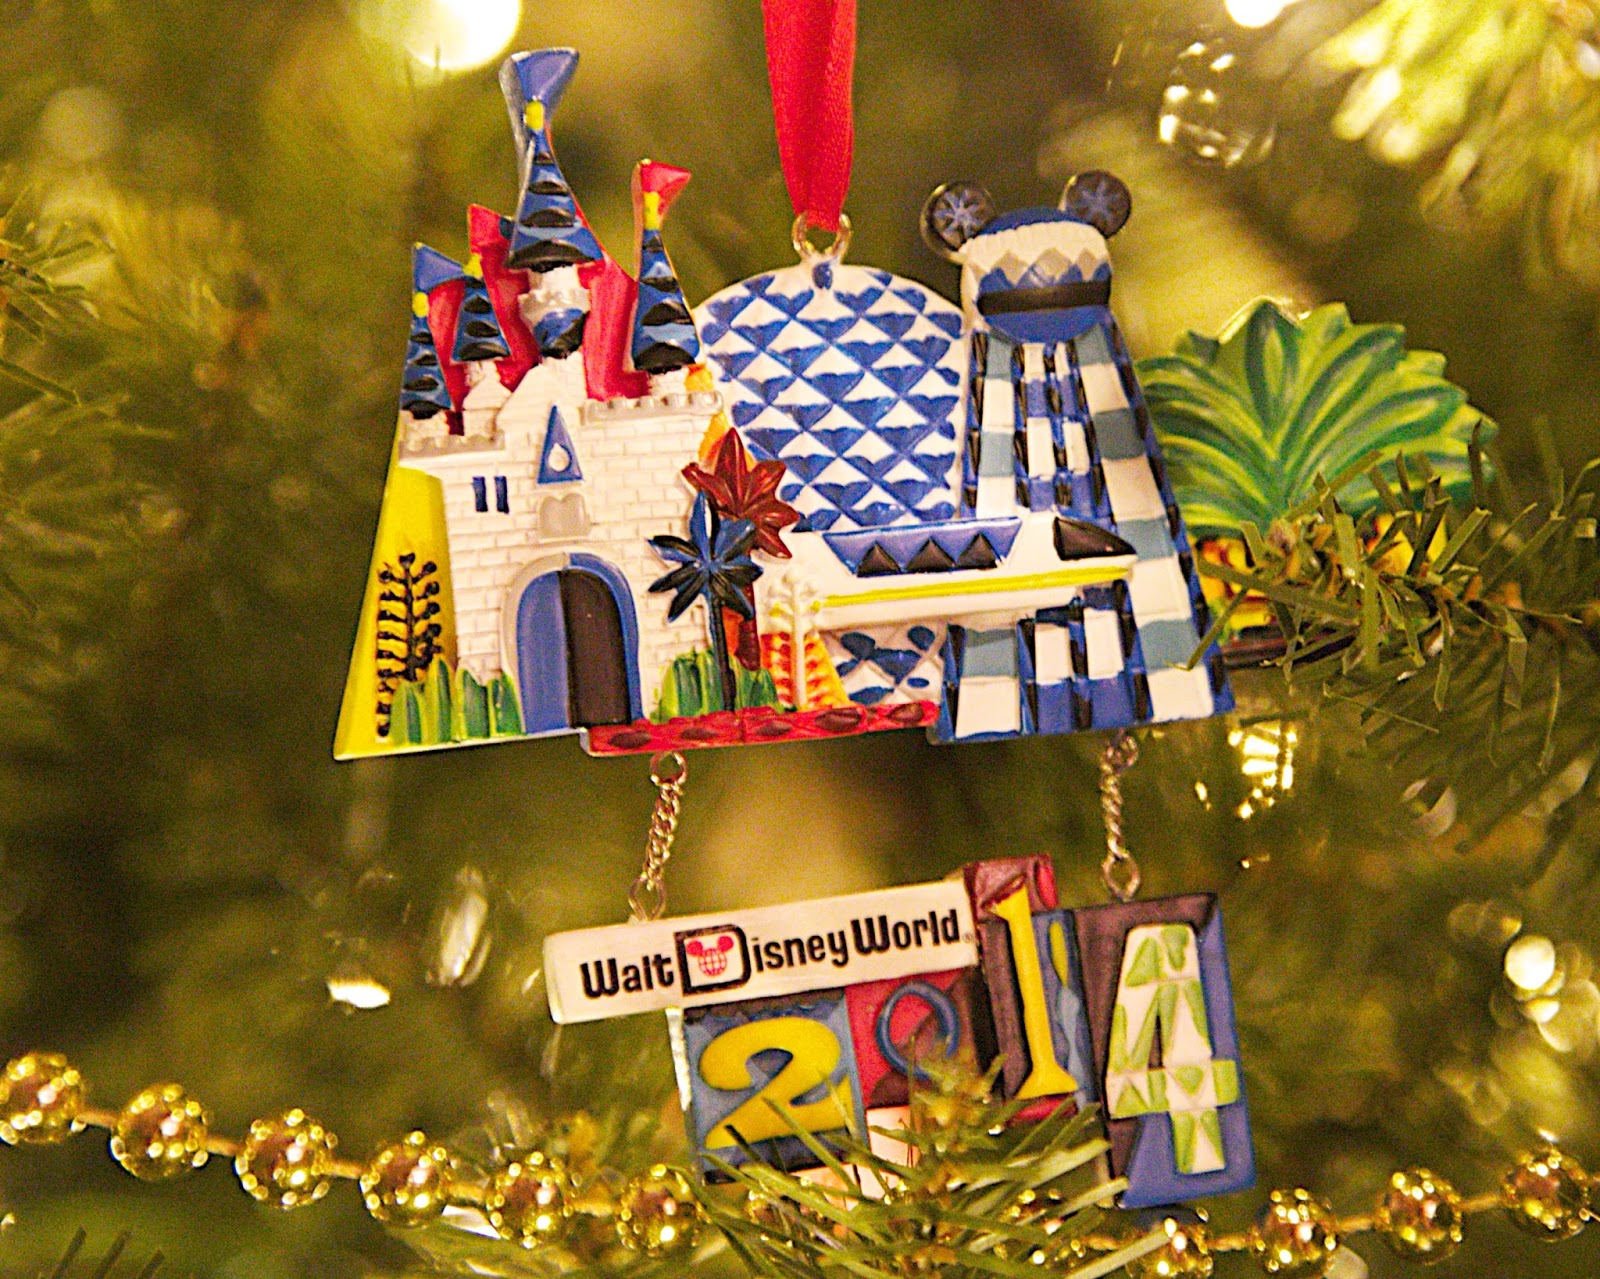 Walt Disney World Ornament